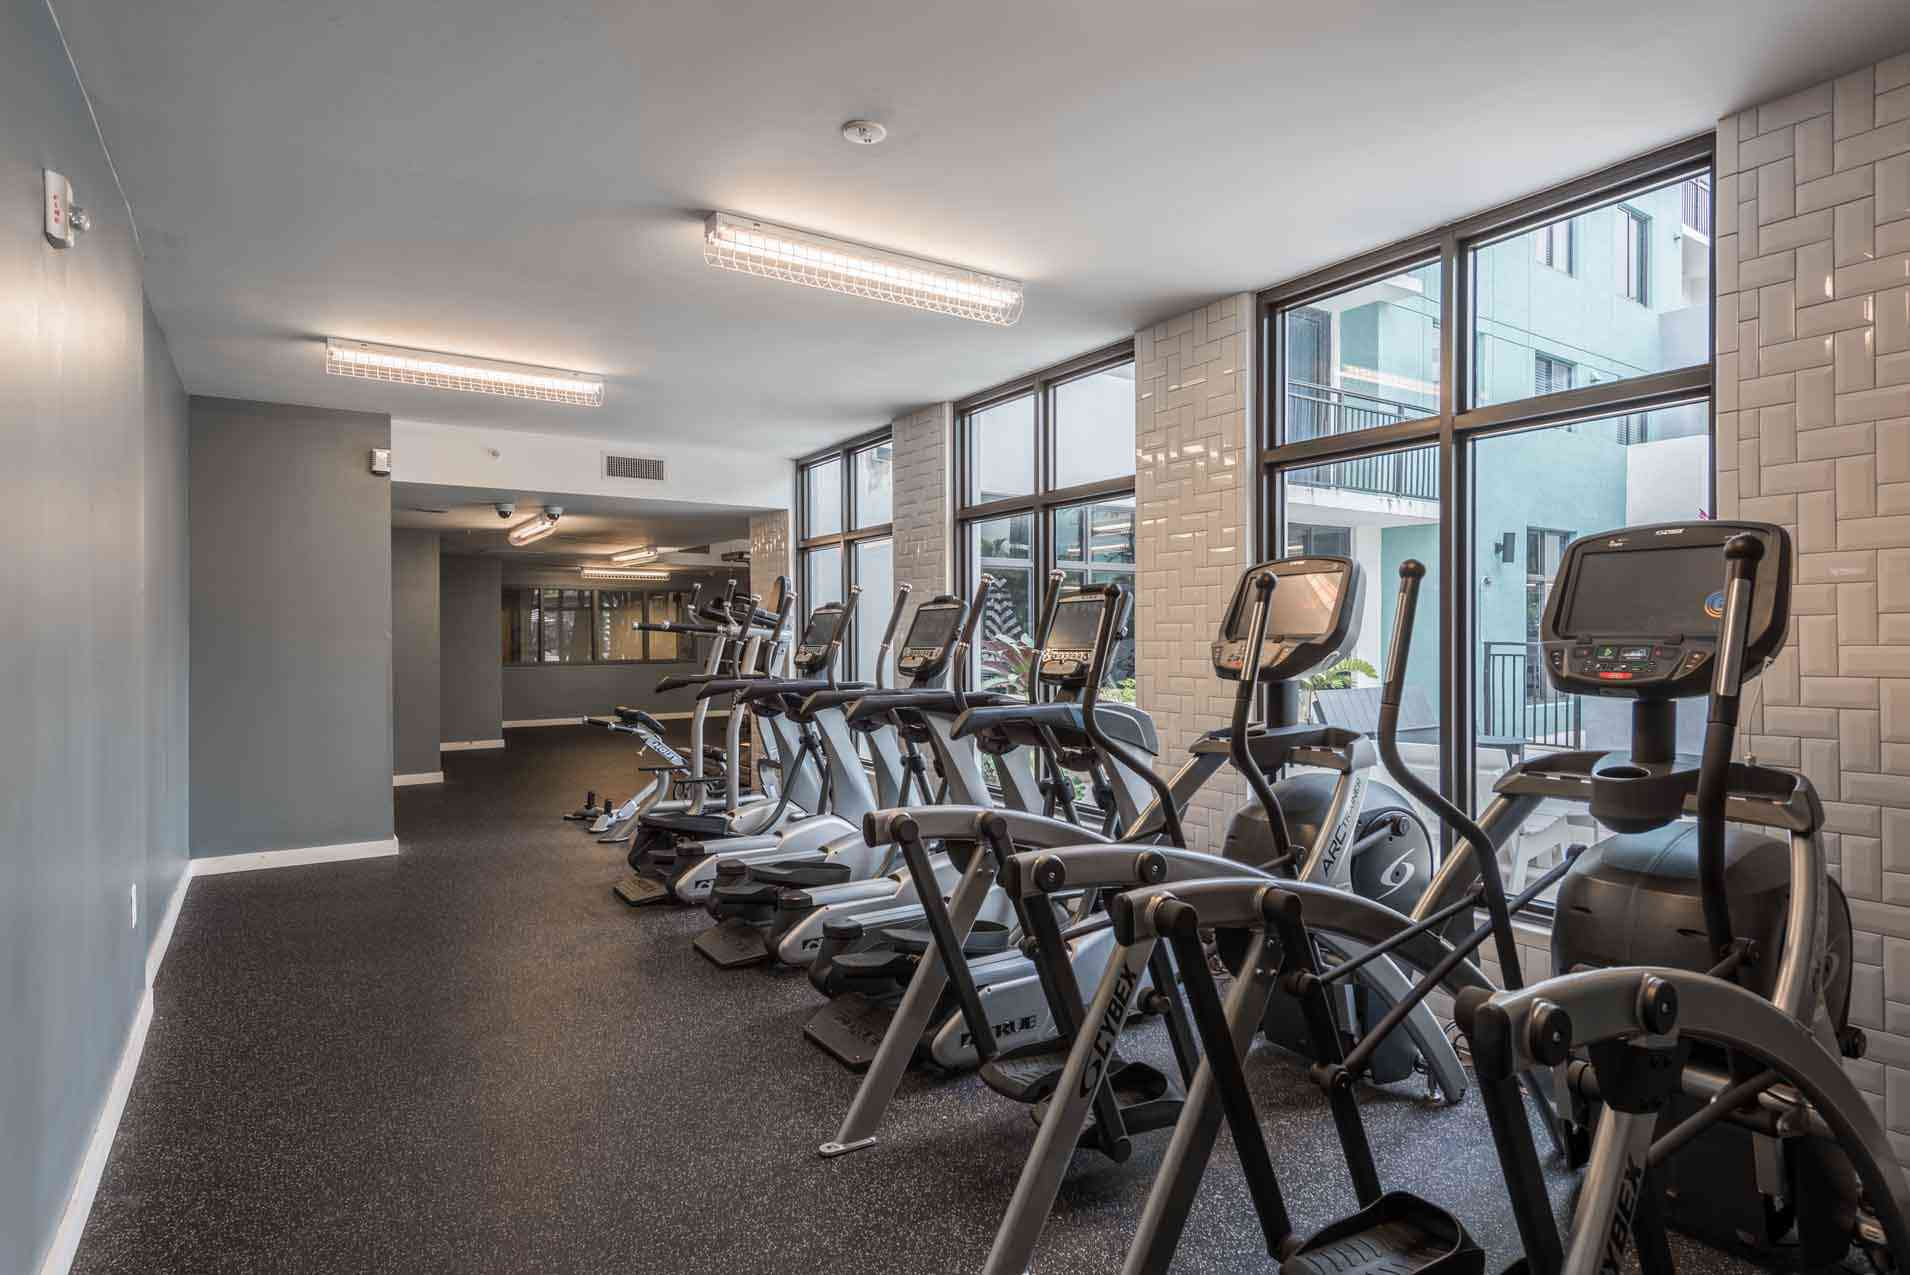 4th-Street-Commons-Miami-Fitness-Center2-Unilodgers